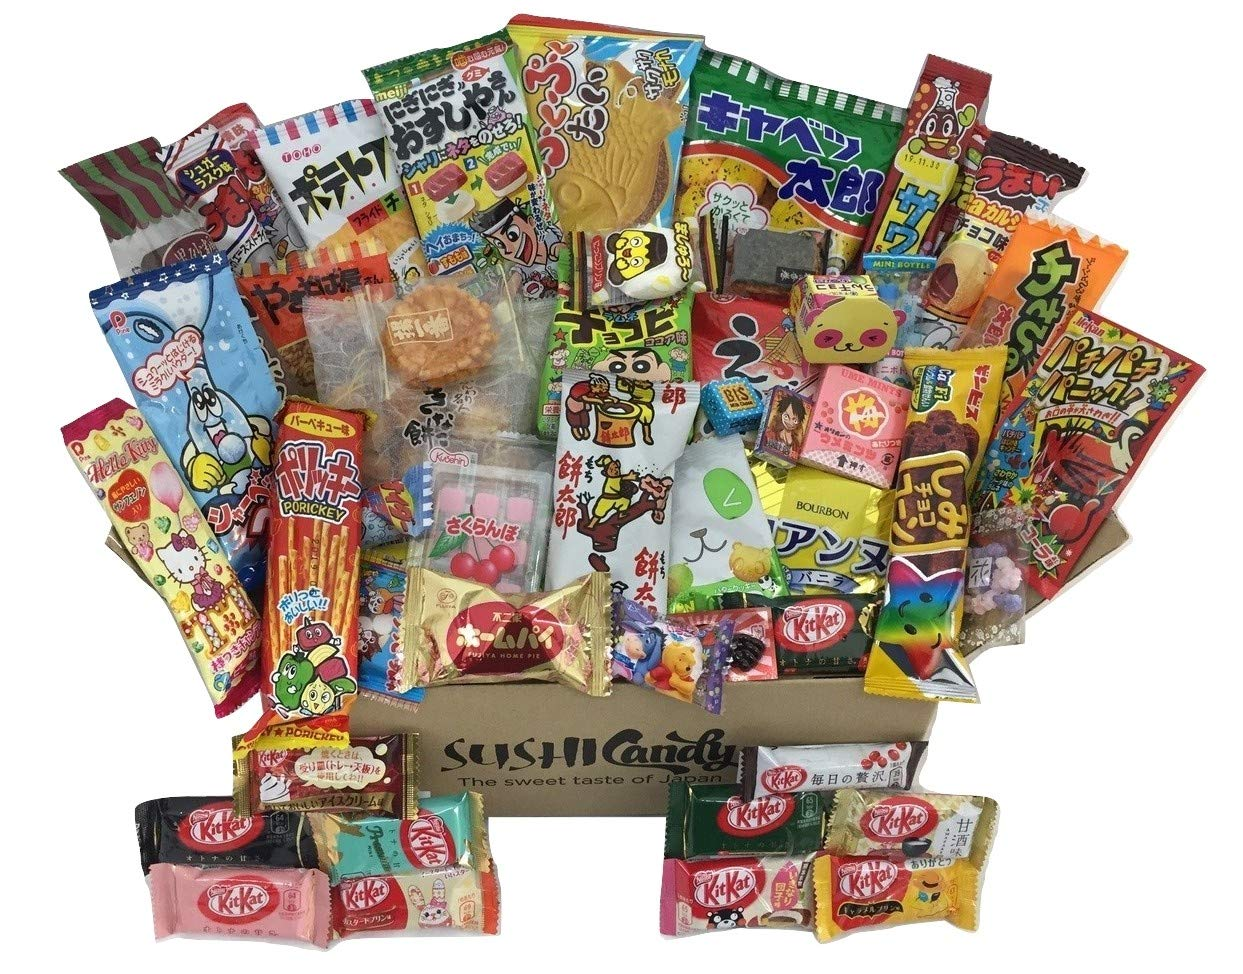 50 Japanese Candy & Snack POPIN COOKIN box set, big Japanese kitkat assortment (10 pieces) and other popular sweets